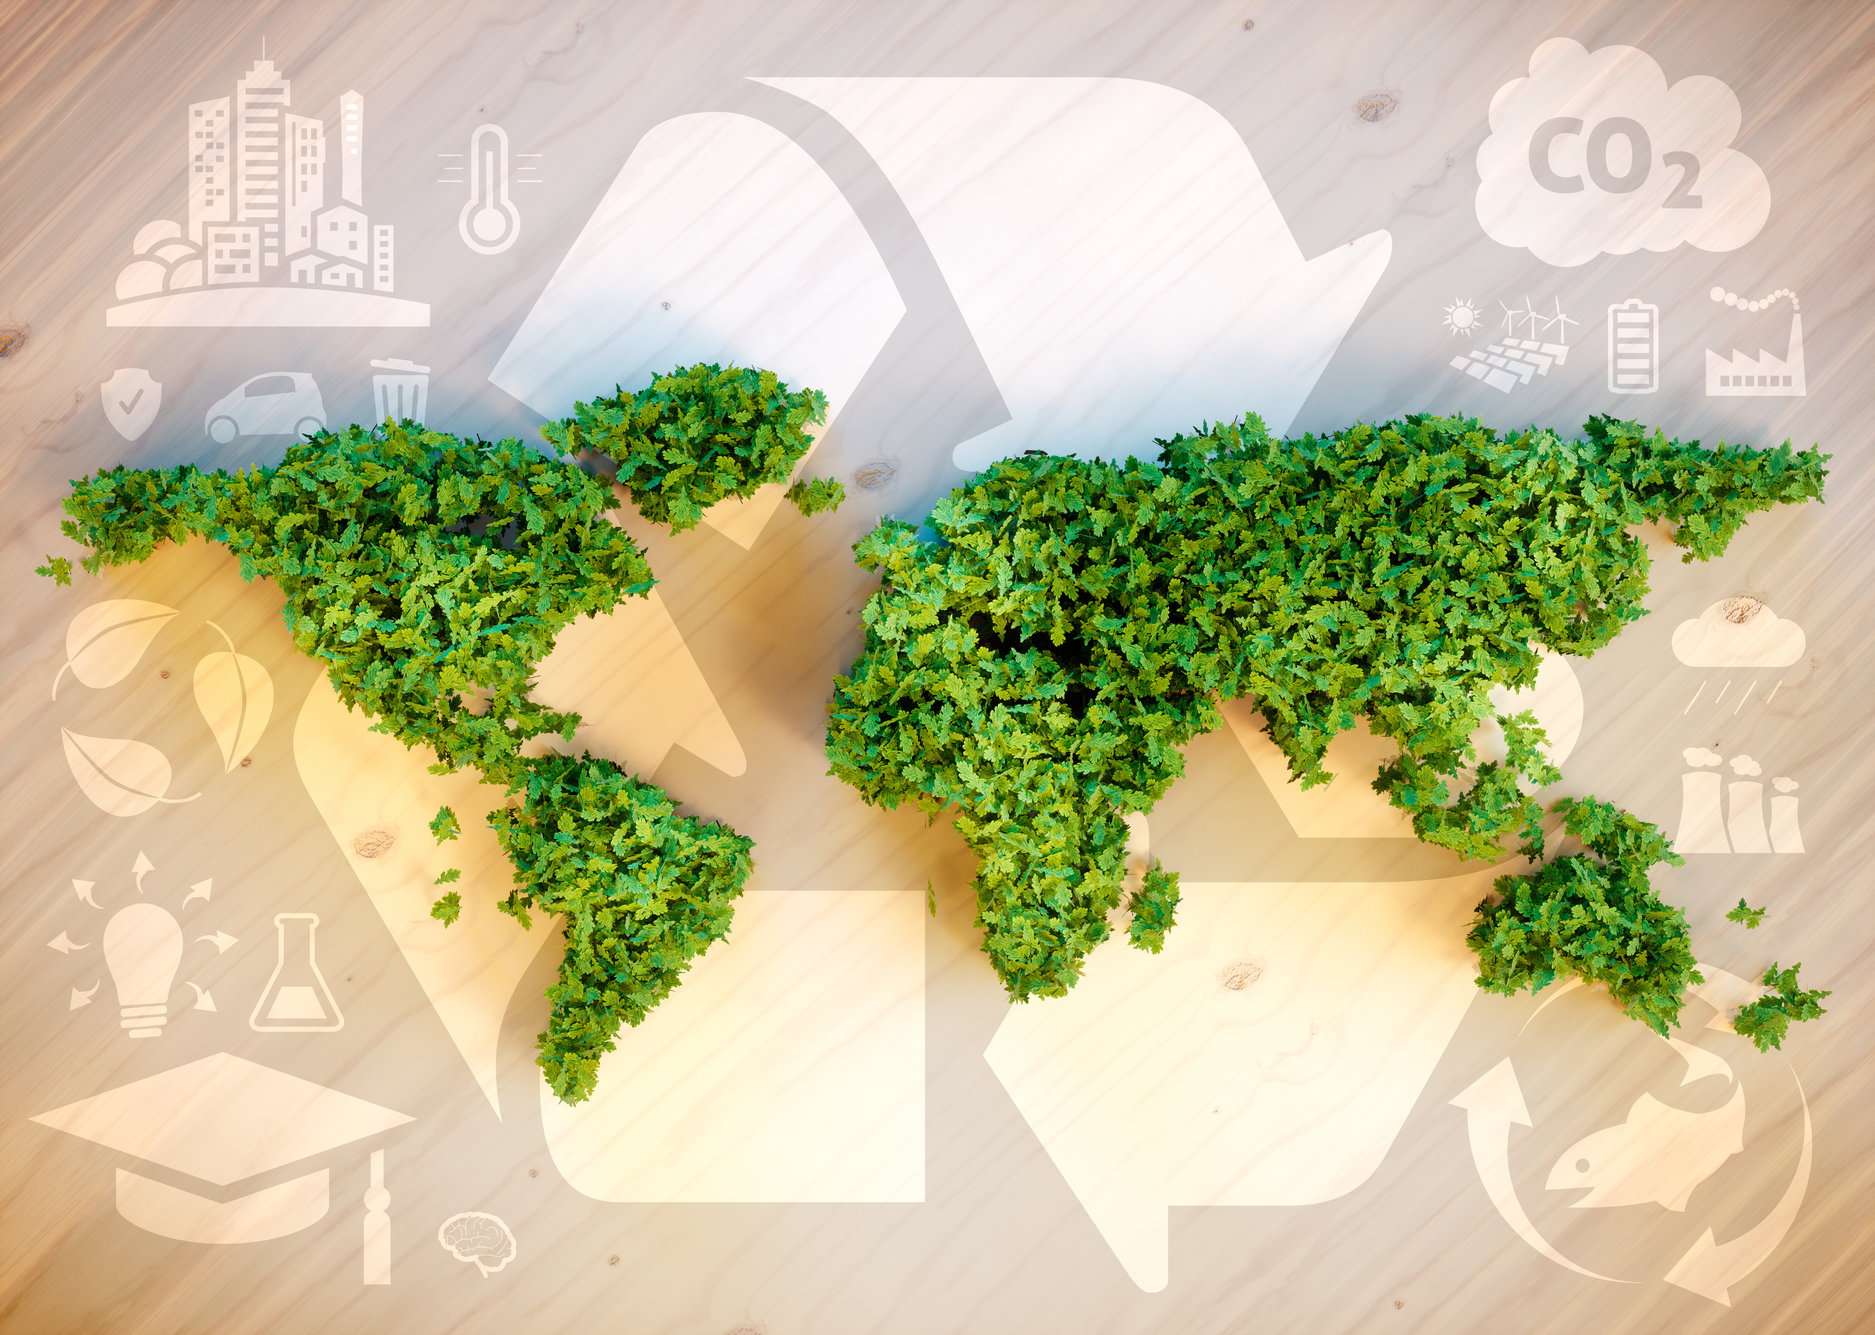 Sustainable business importance